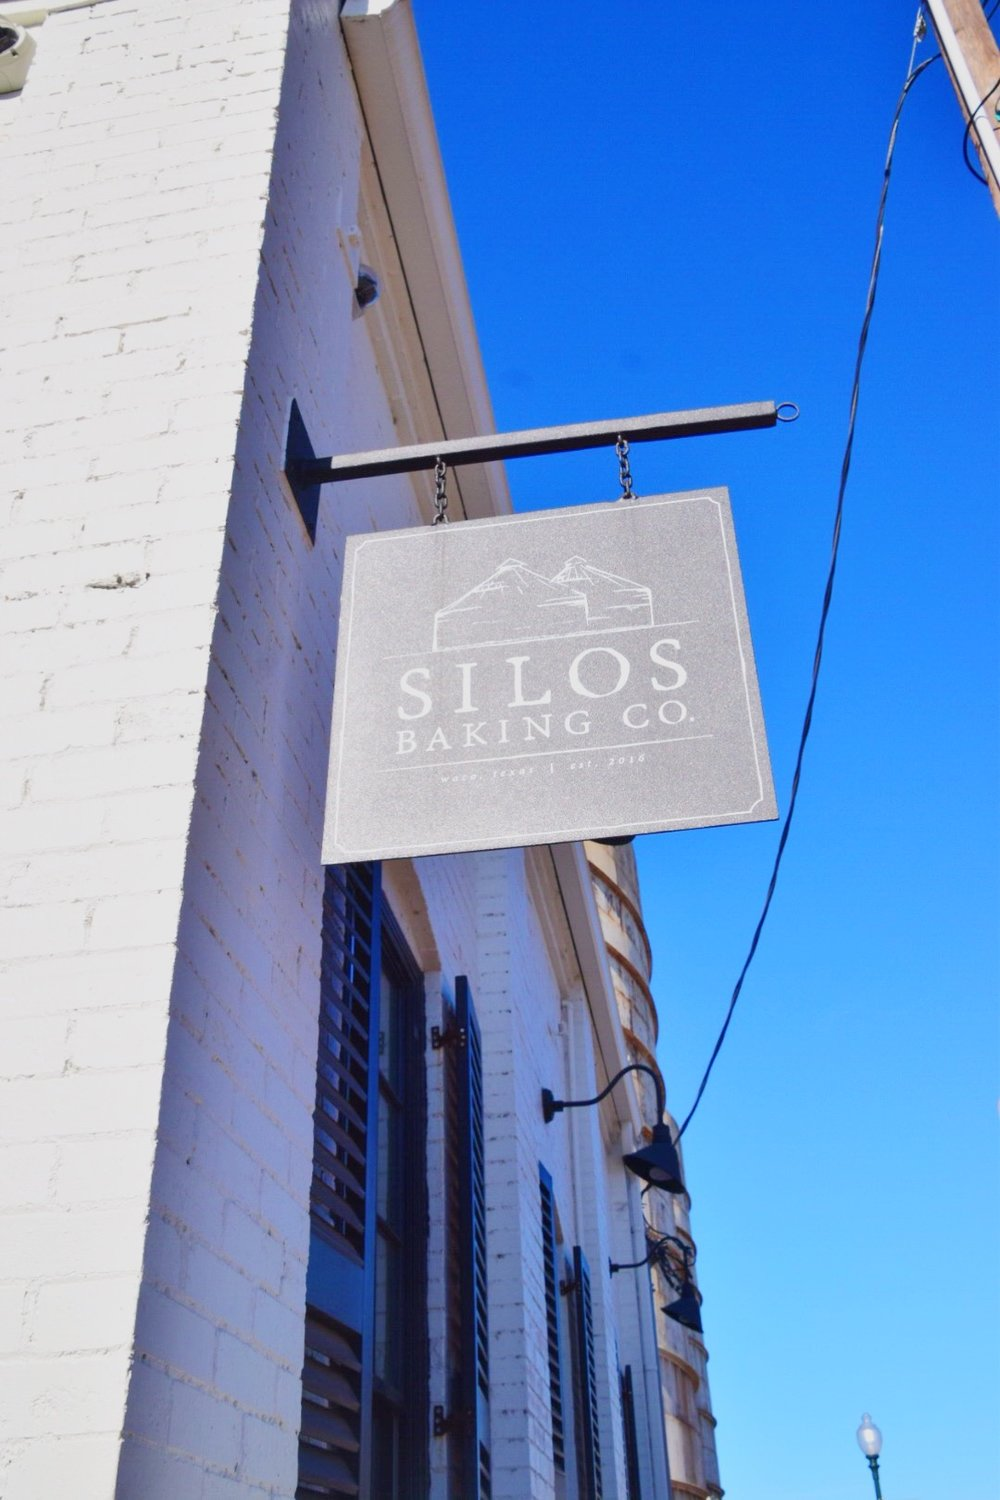 Things to do in Waco, Texas - Silos Baking Co - Wander Dust Blog (6).JPG